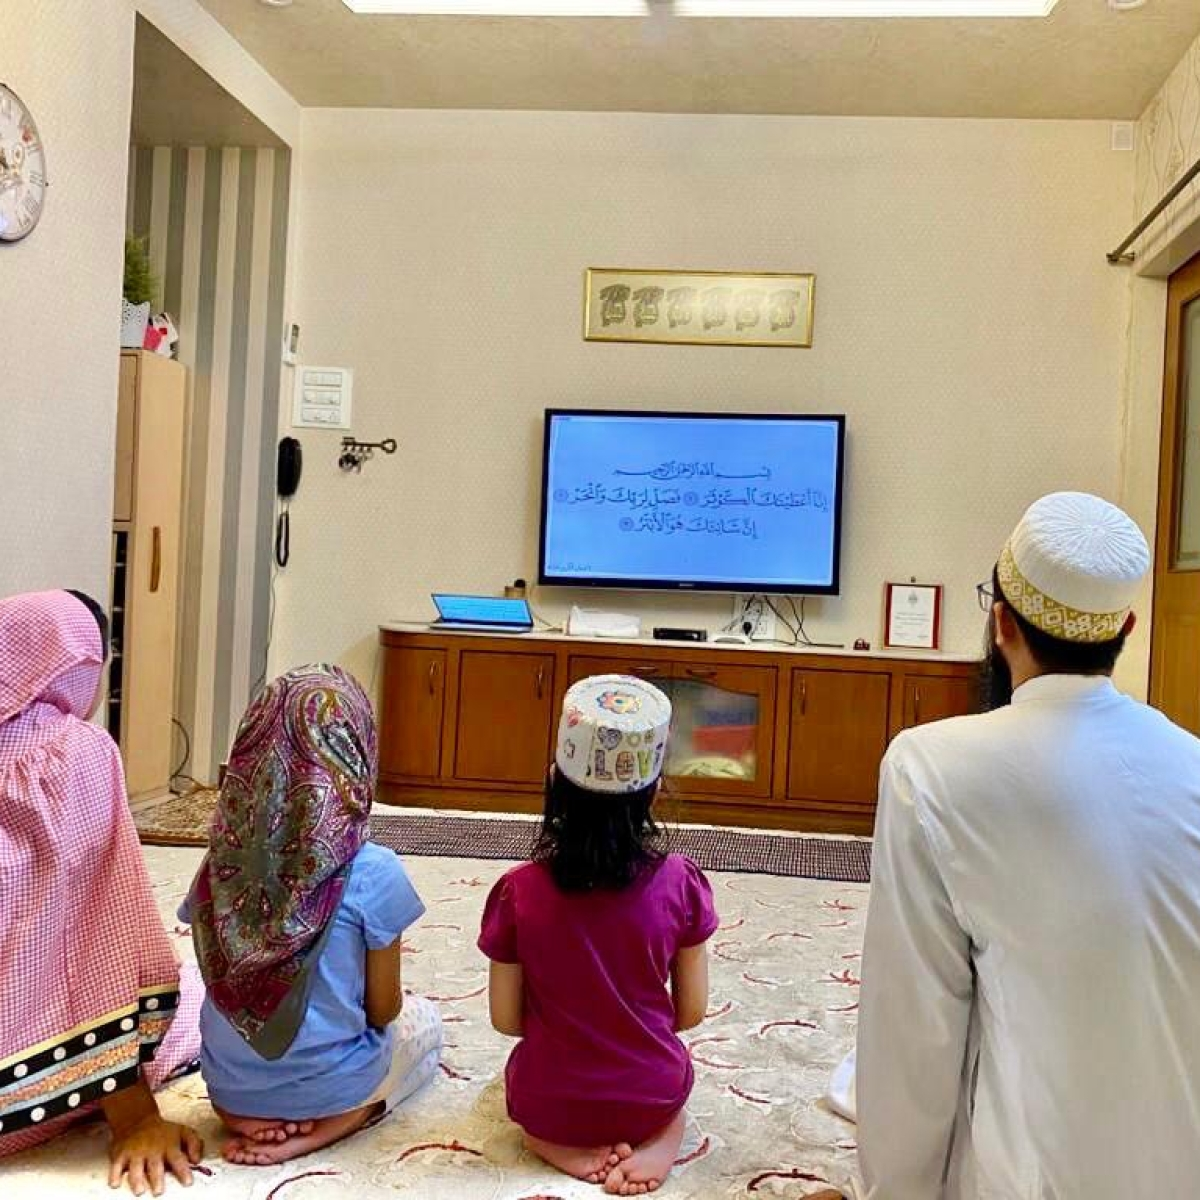 Indore: Known for social gatherings, Bohras celebrate Islamic new year at home due to coronavirus